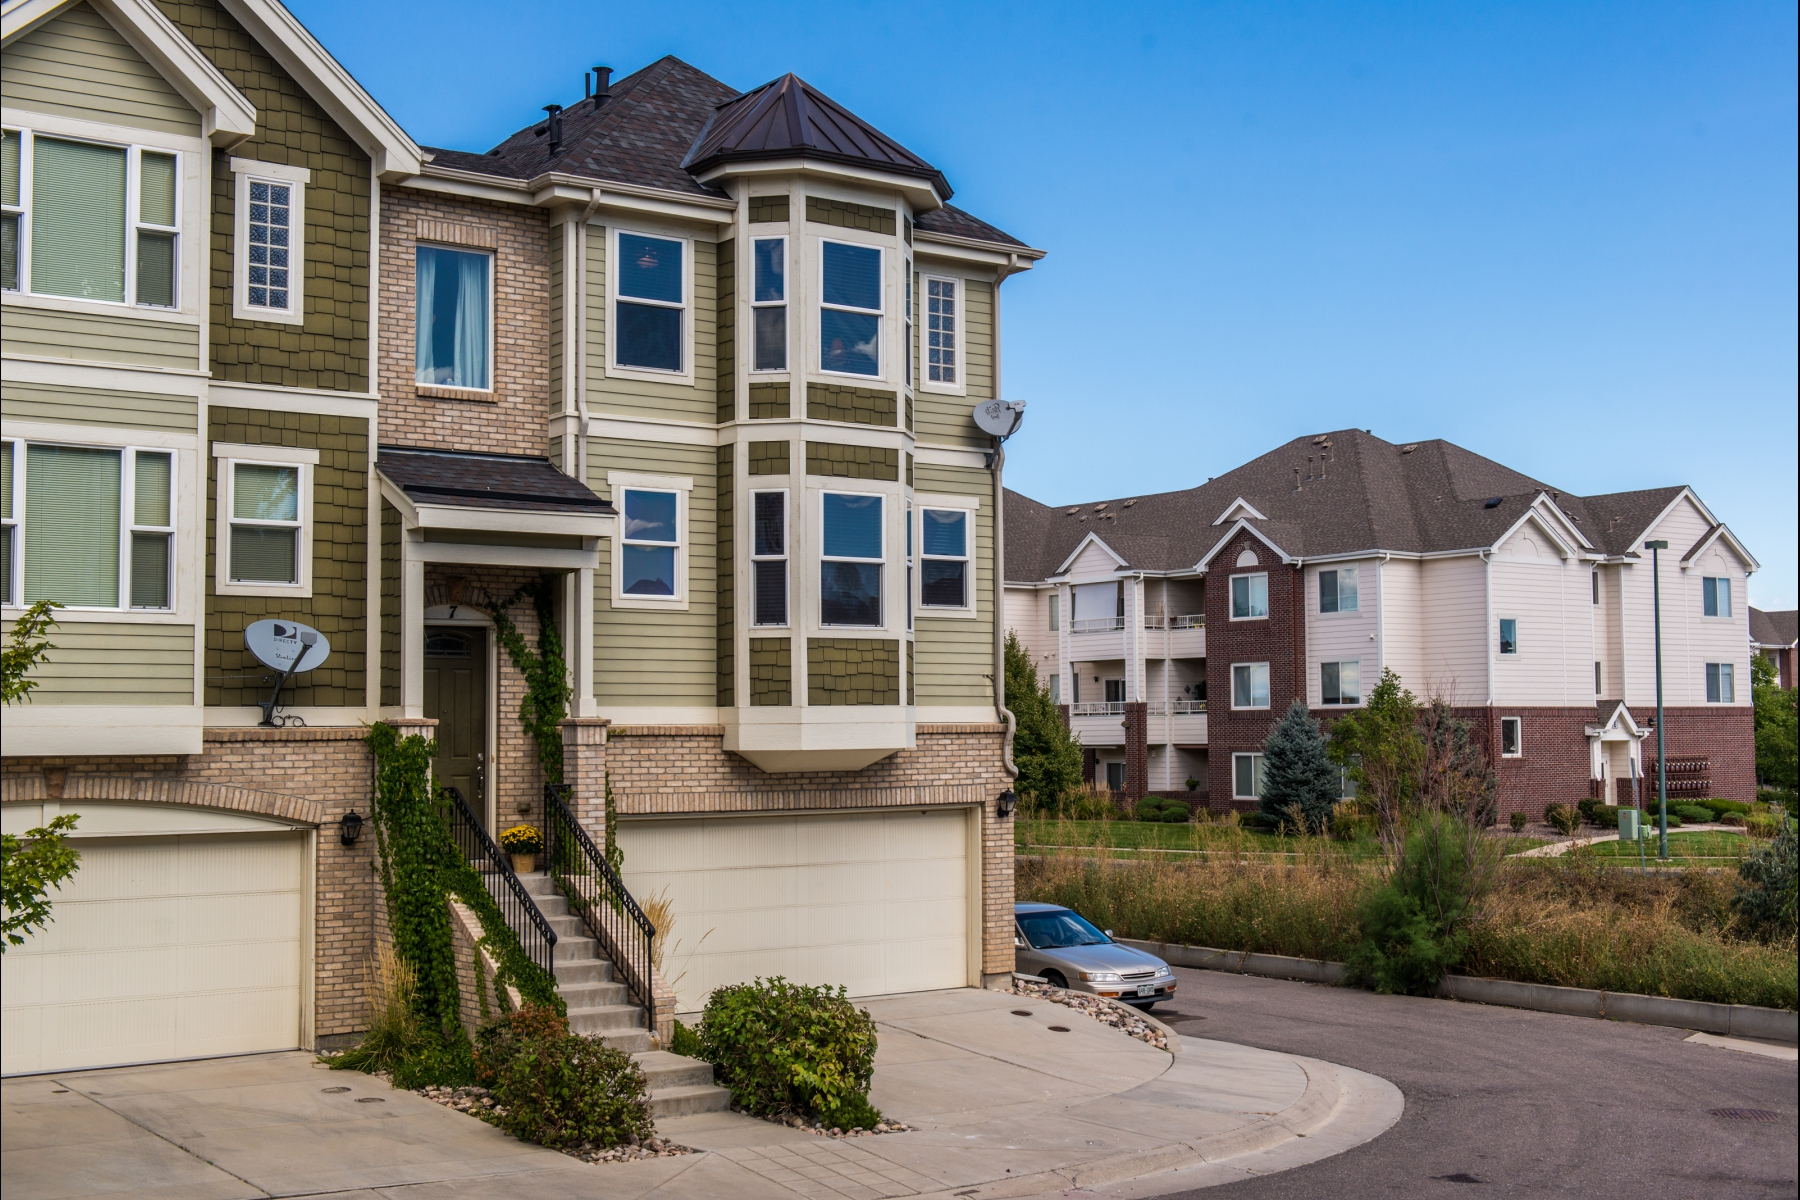 Single Family Home for Sale at 3680 South Beeler Street #7 Denver, Colorado 80237 United States